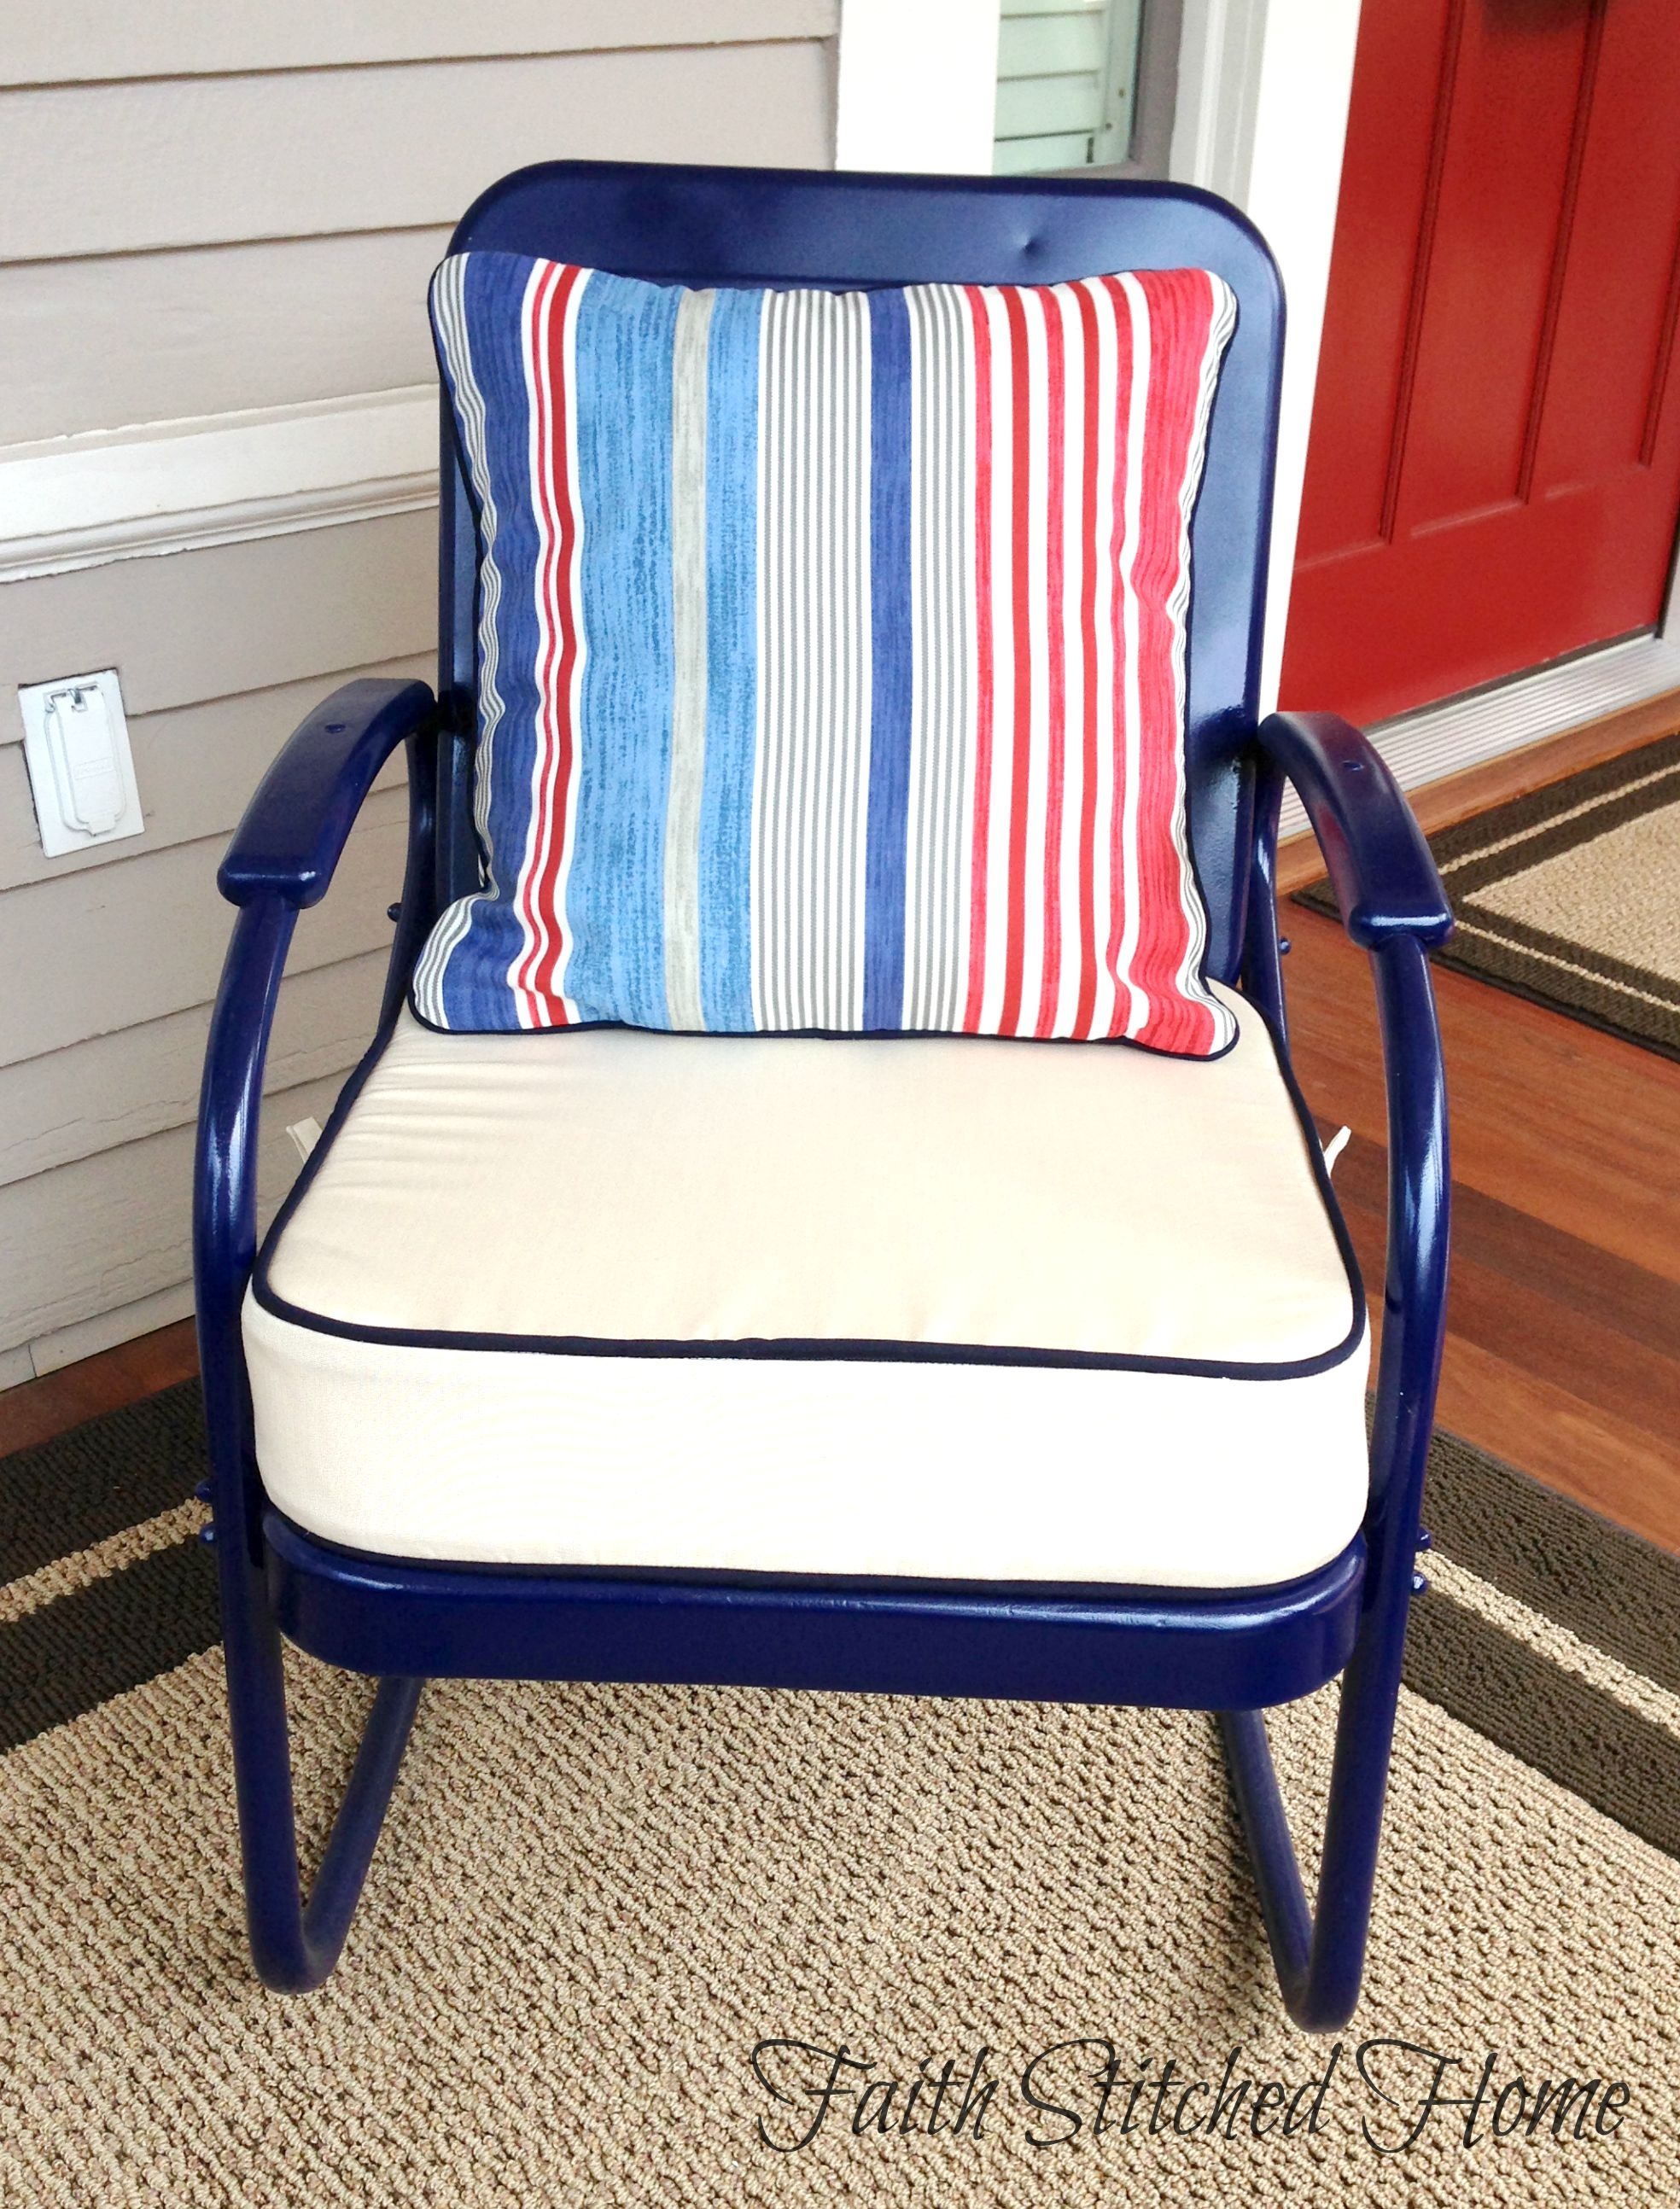 Upholstered Cushions For A Vintage Metal Porch Set